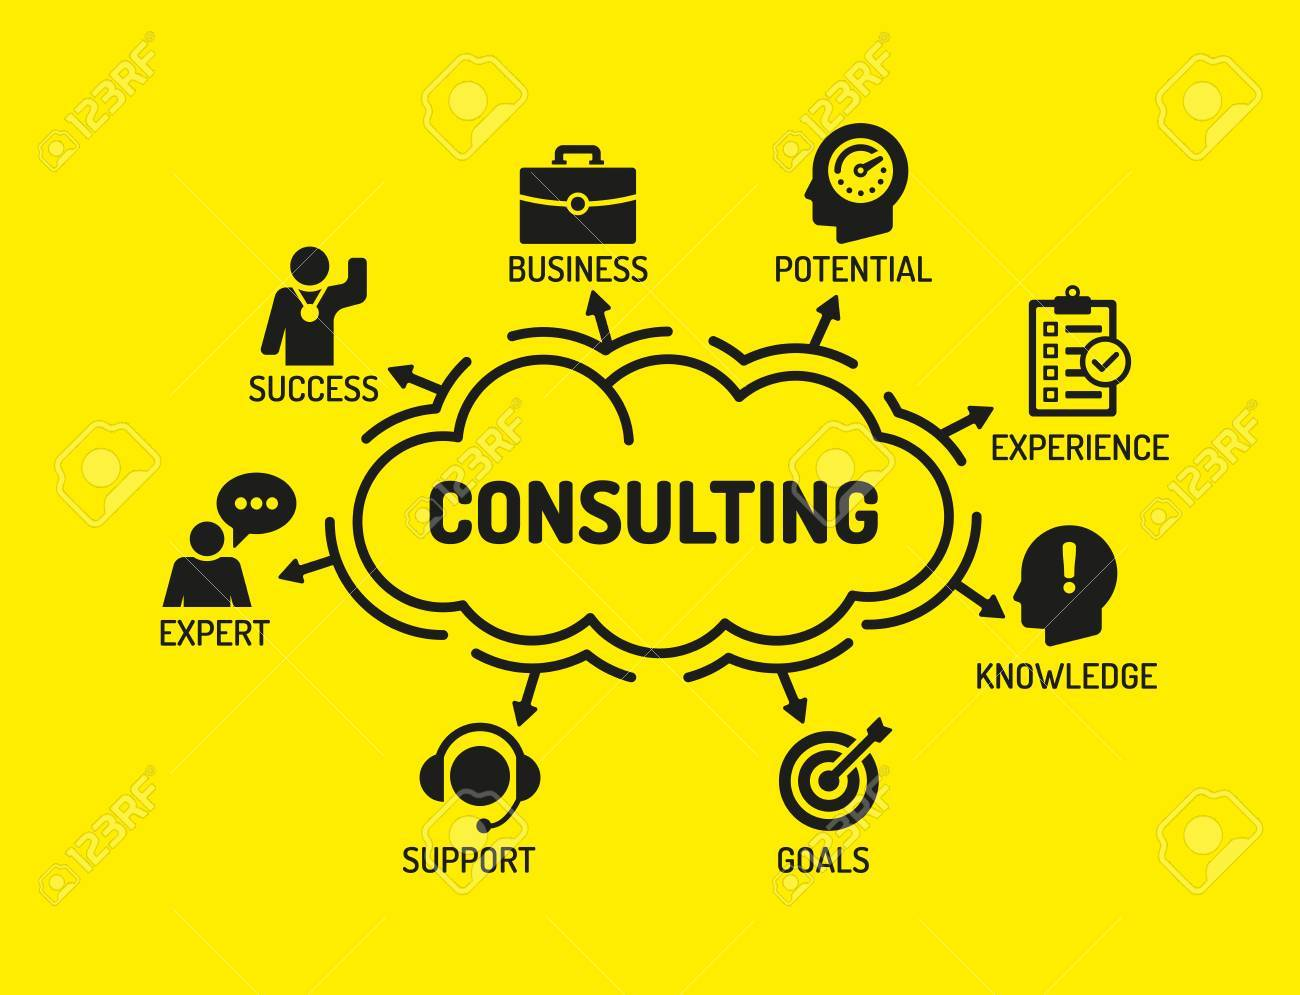 Consulting. Chart with keywords and icons on yellow background - 61462201